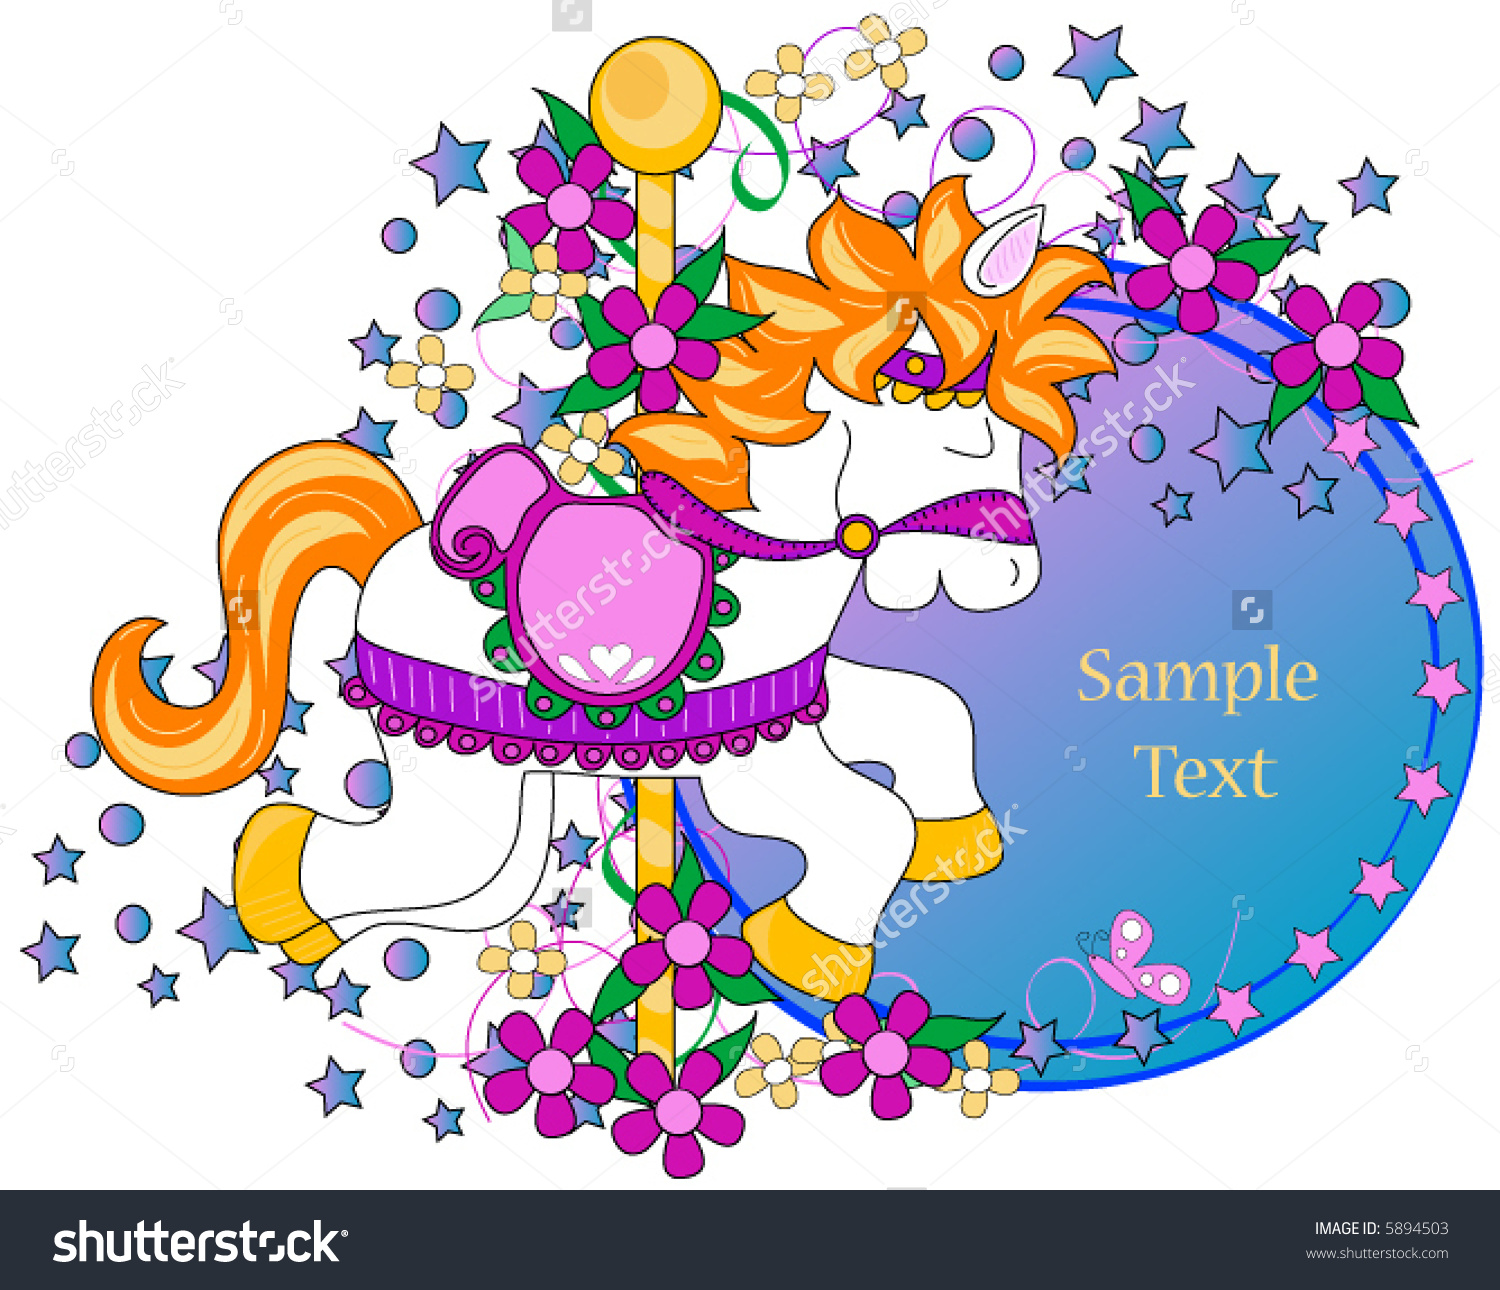 Carousel Horse Clipart Space Text Stock Vector 5894503.